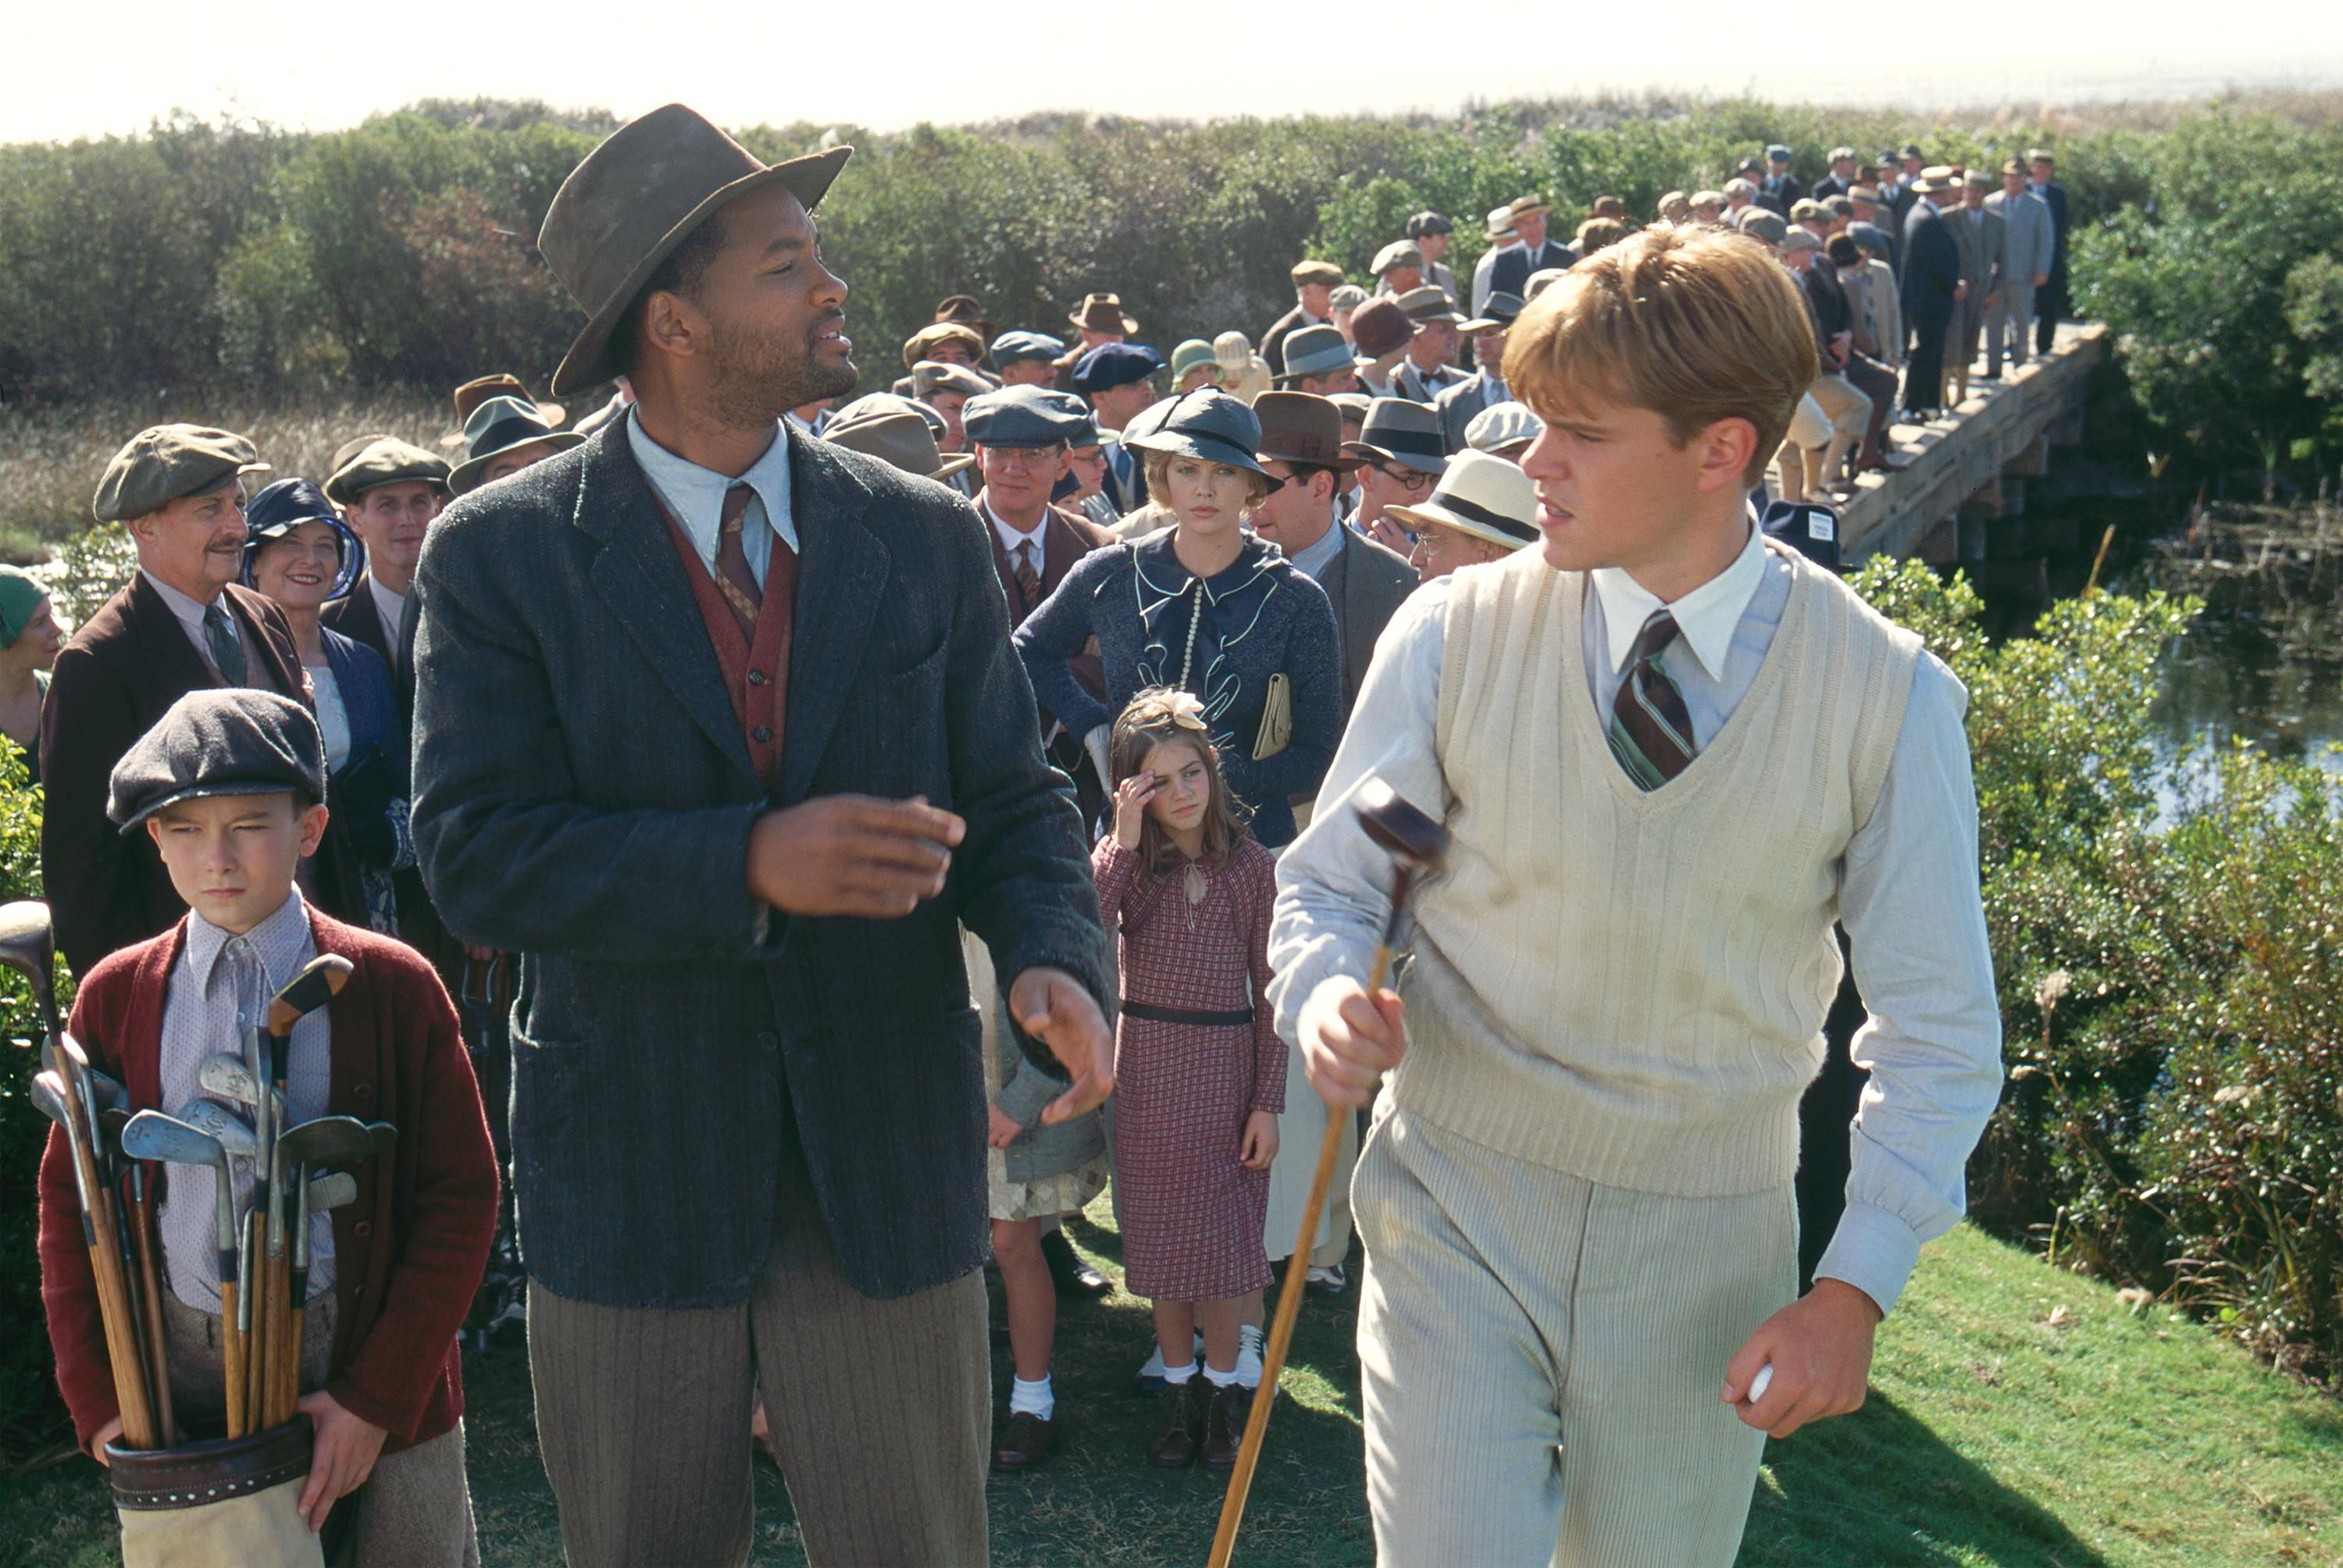 Will Smith and Matt Damon in a scene from The Legend of Bagger Vance